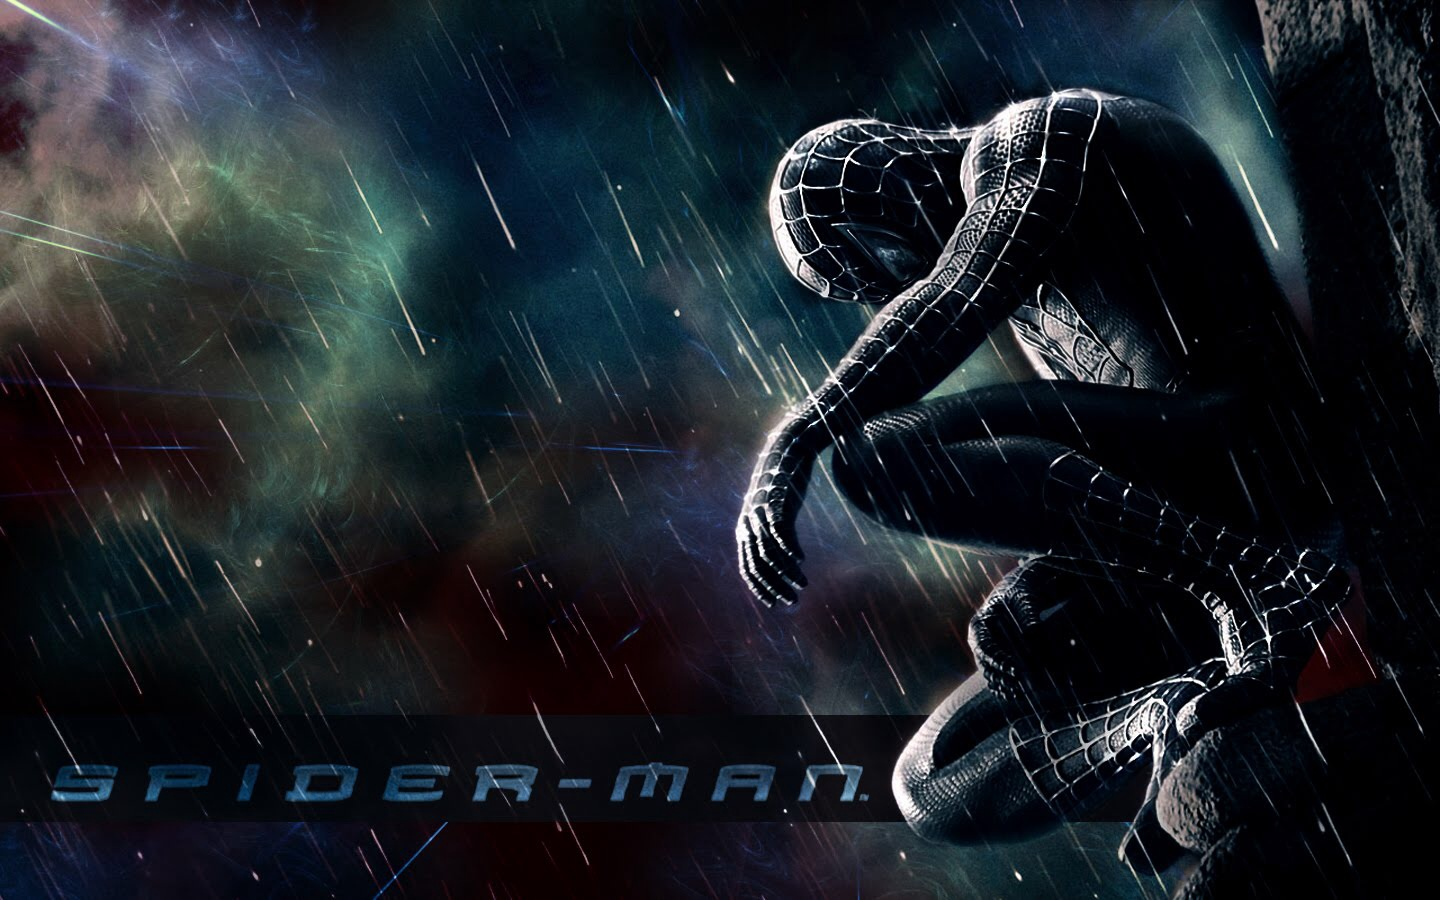 Spiderman 2014 – I Sing The Body Electric…